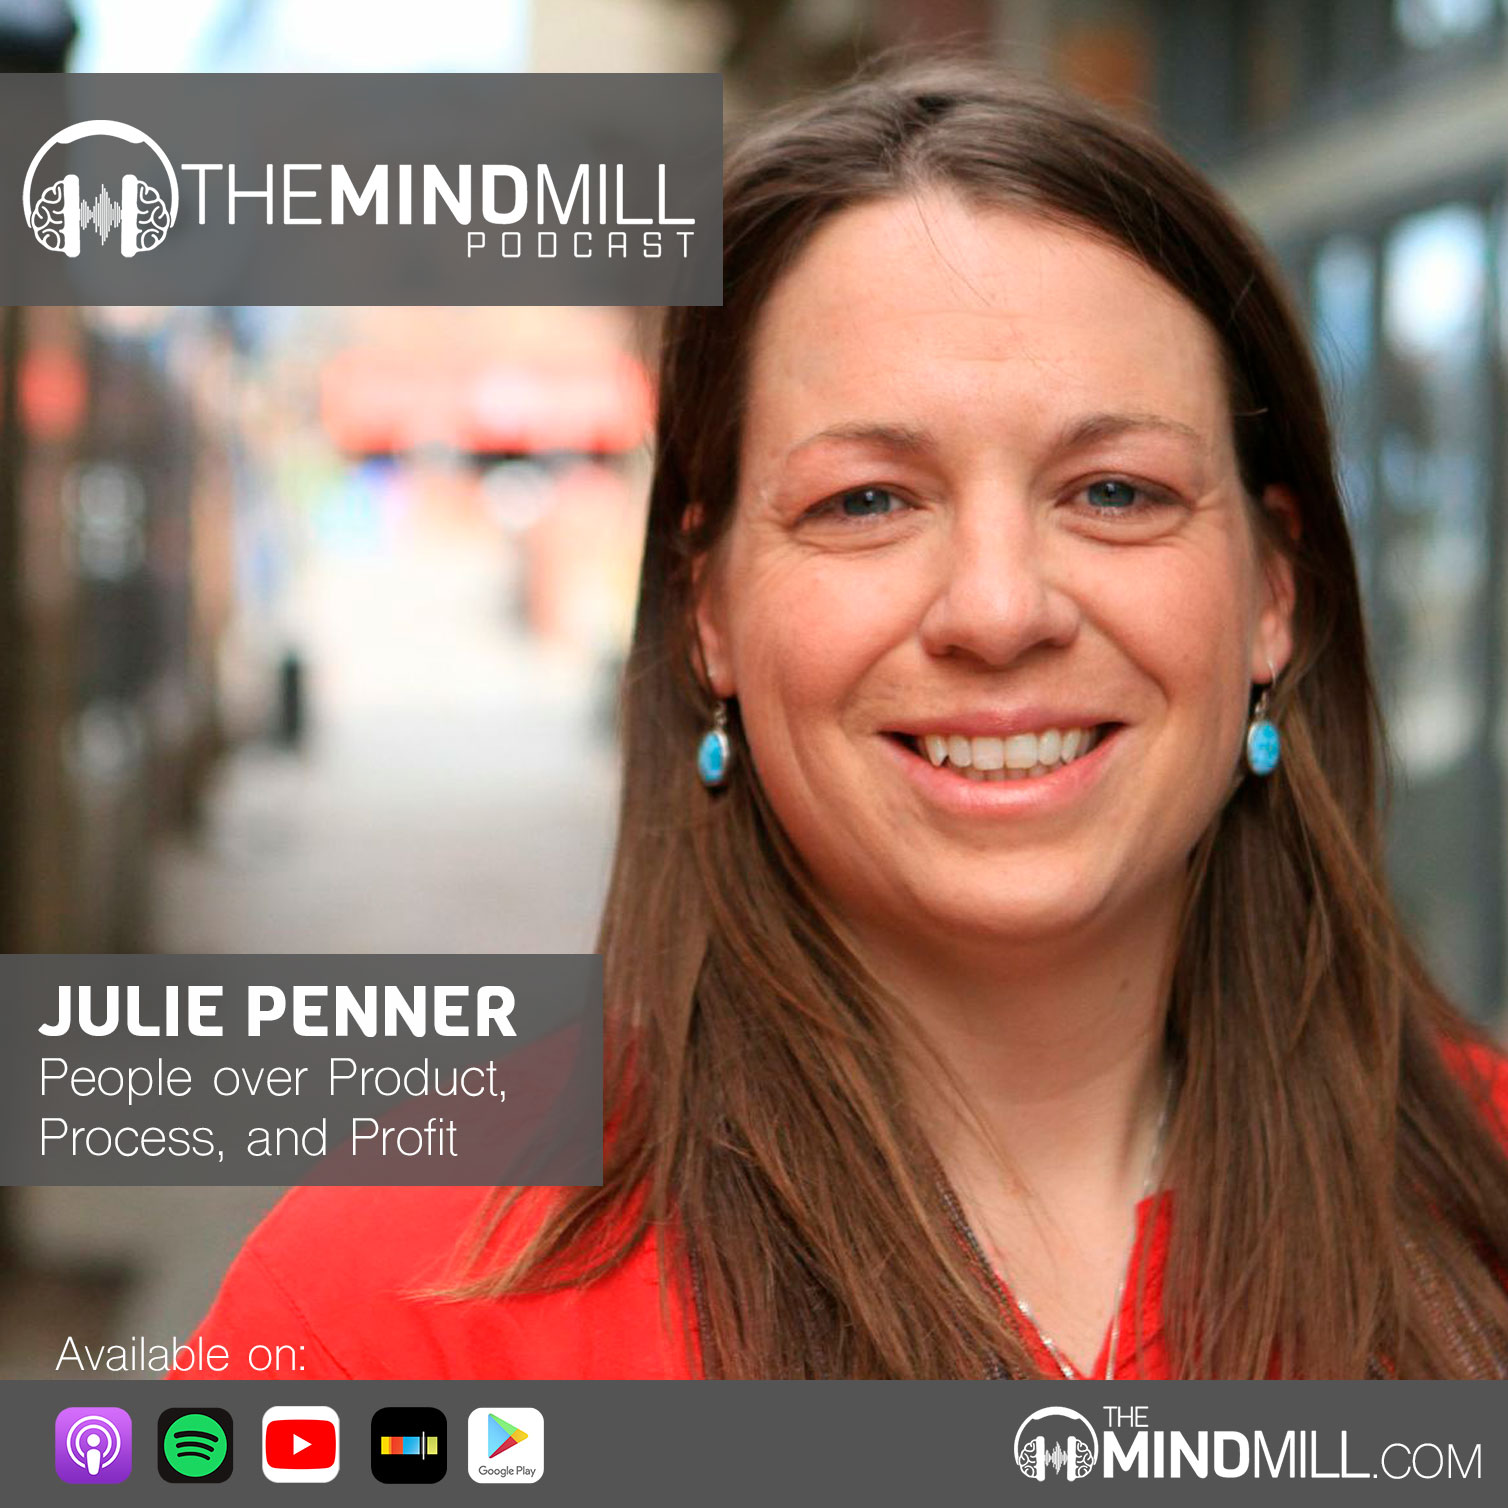 Julie Penner | People over Product, Process, and Profit